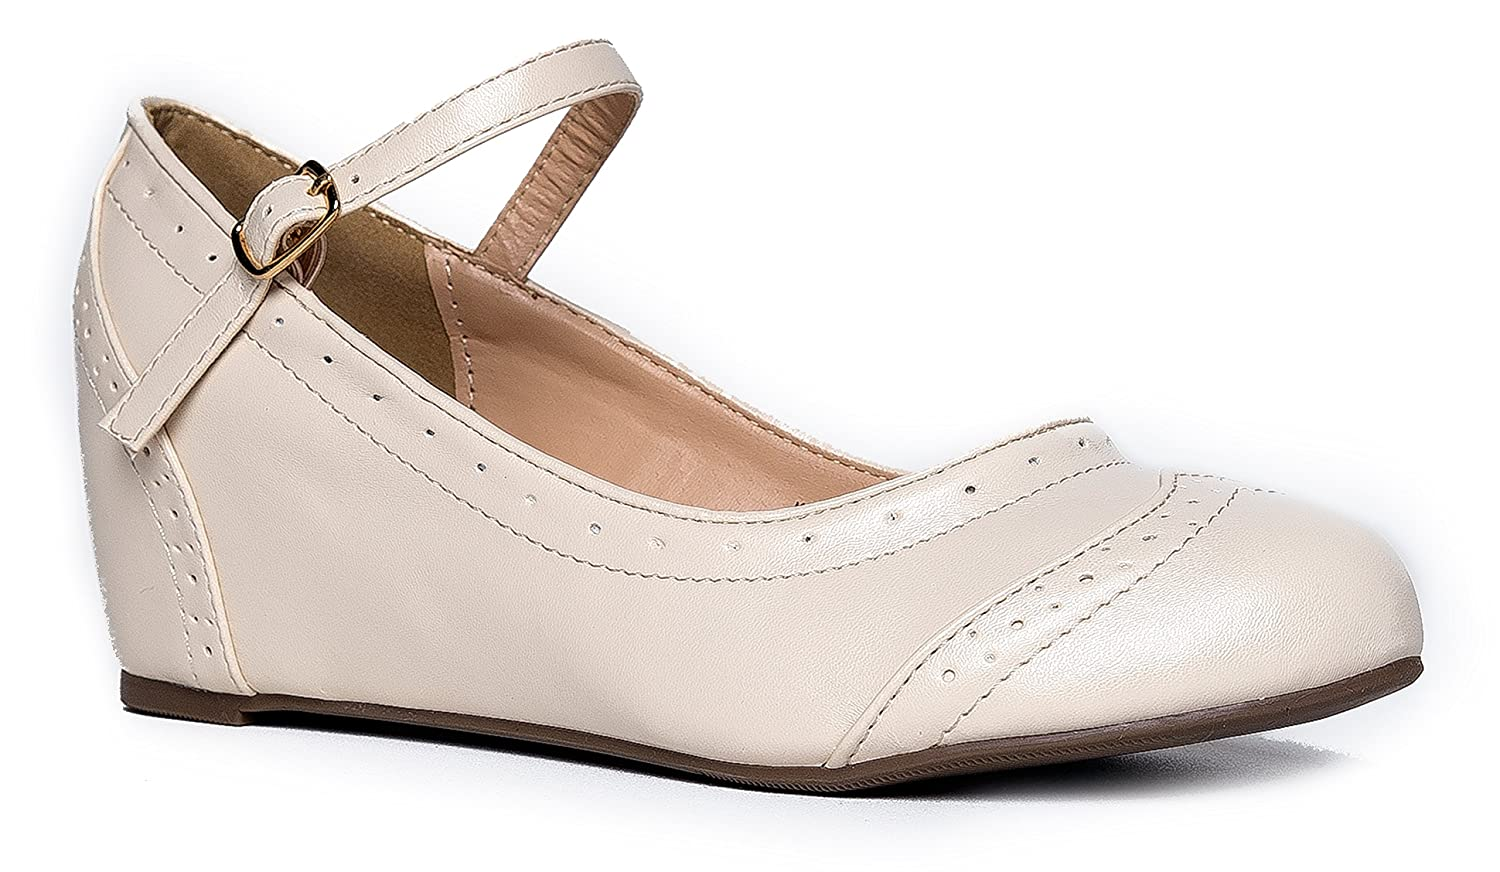 1940s Style Wedding Dresses | Classic Wedding Dresses Ankle Strap Mary Jane Wedge - Low Round Toe Retro Shoe - Cute Vintage Oxford Heel - Minnie by J Adams $27.50 AT vintagedancer.com